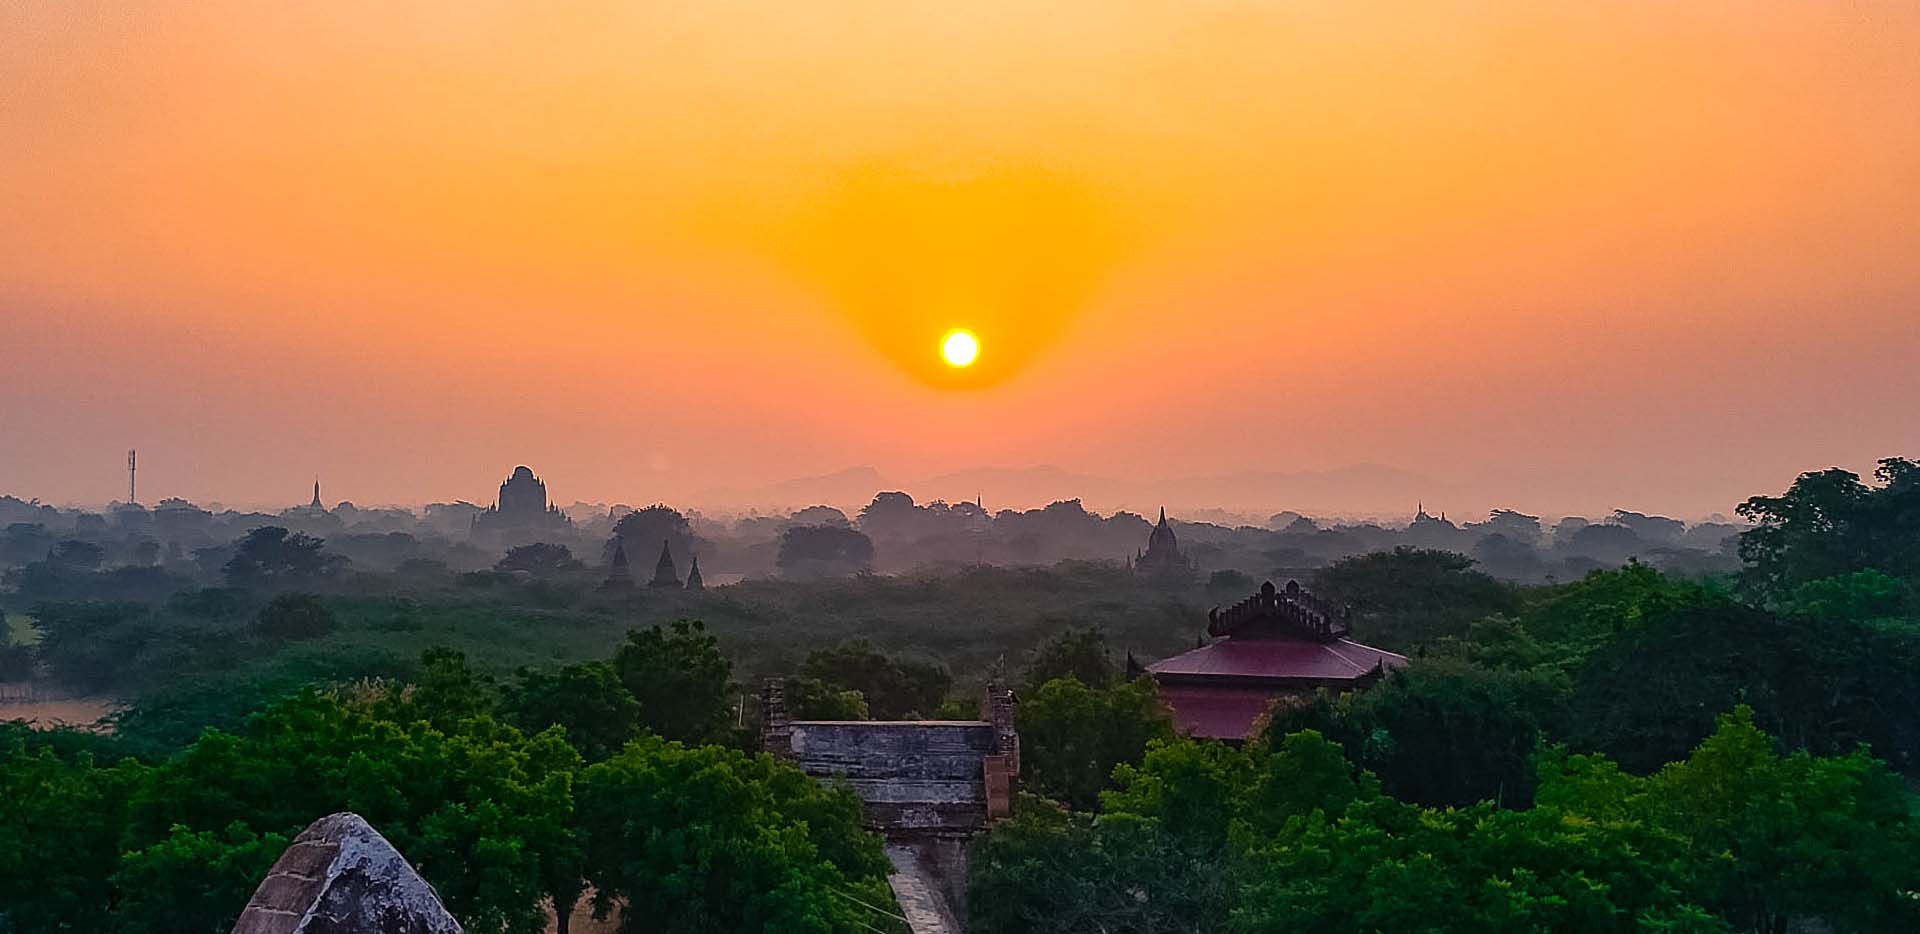 Sunrise over the Pagodas